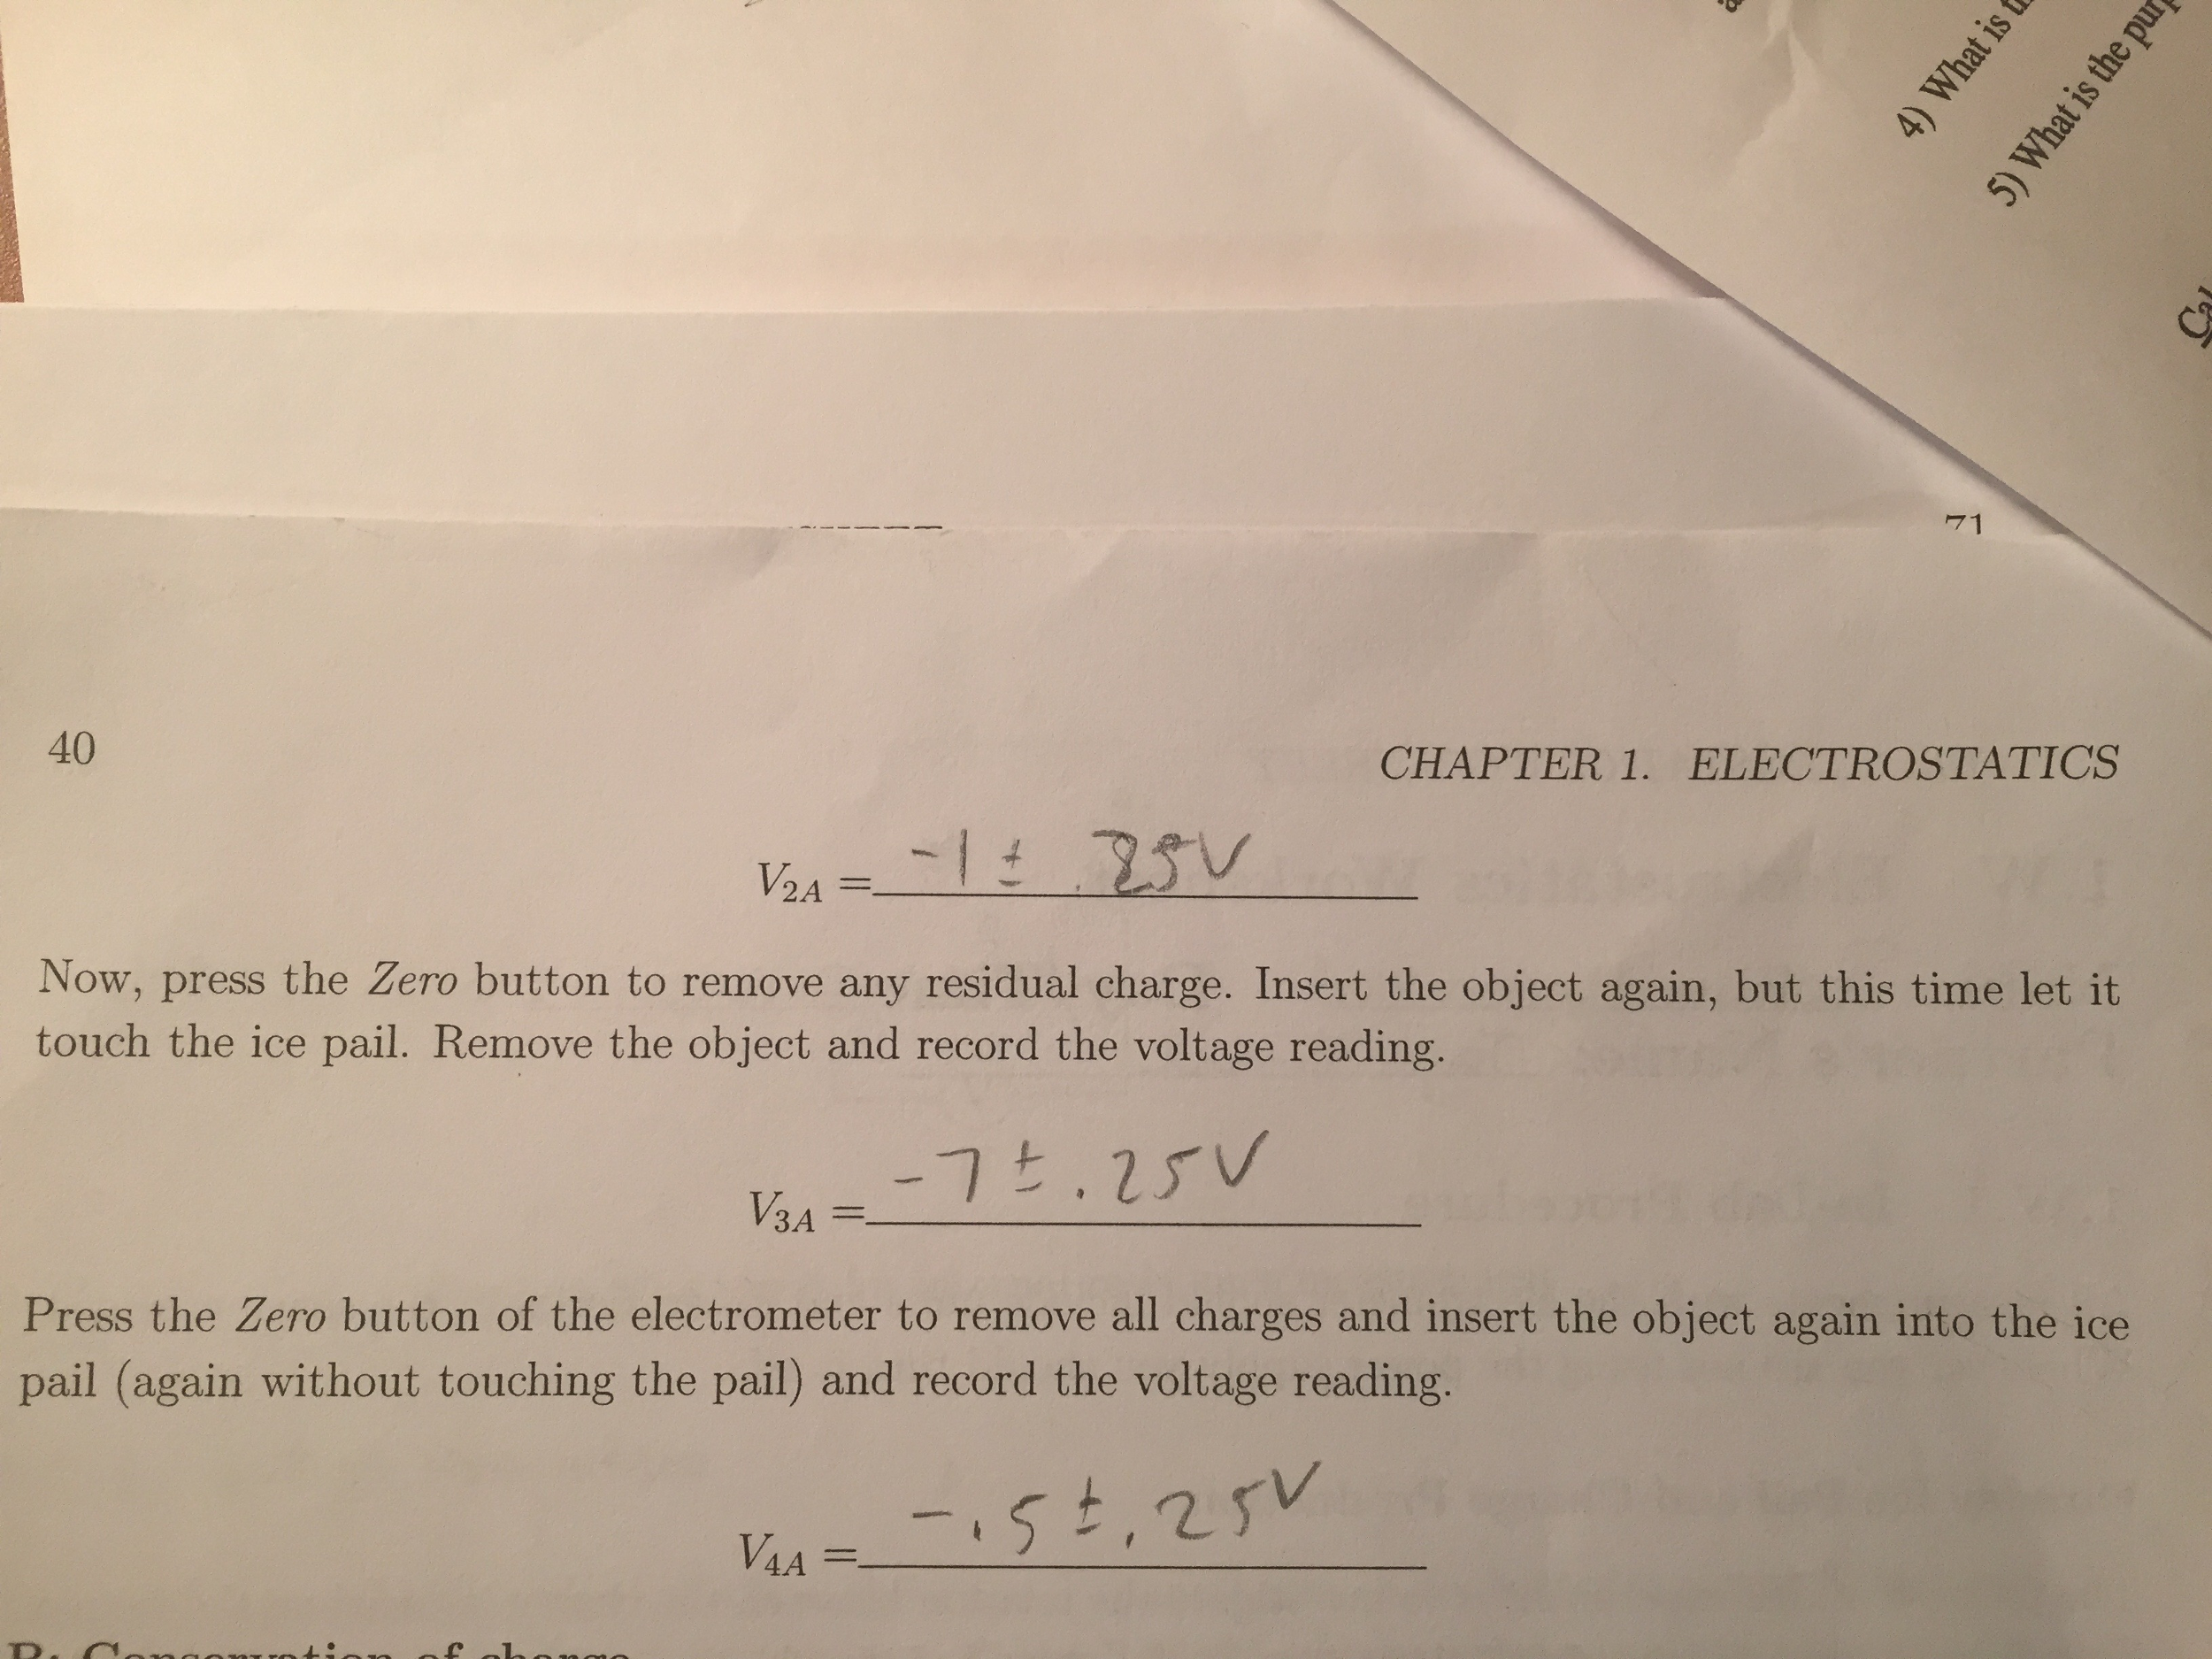 i need physics help regarding electrometers and el com 1 explain why there was a potential difference between the pail and the shield only while the charged object was innside where the object did not touch